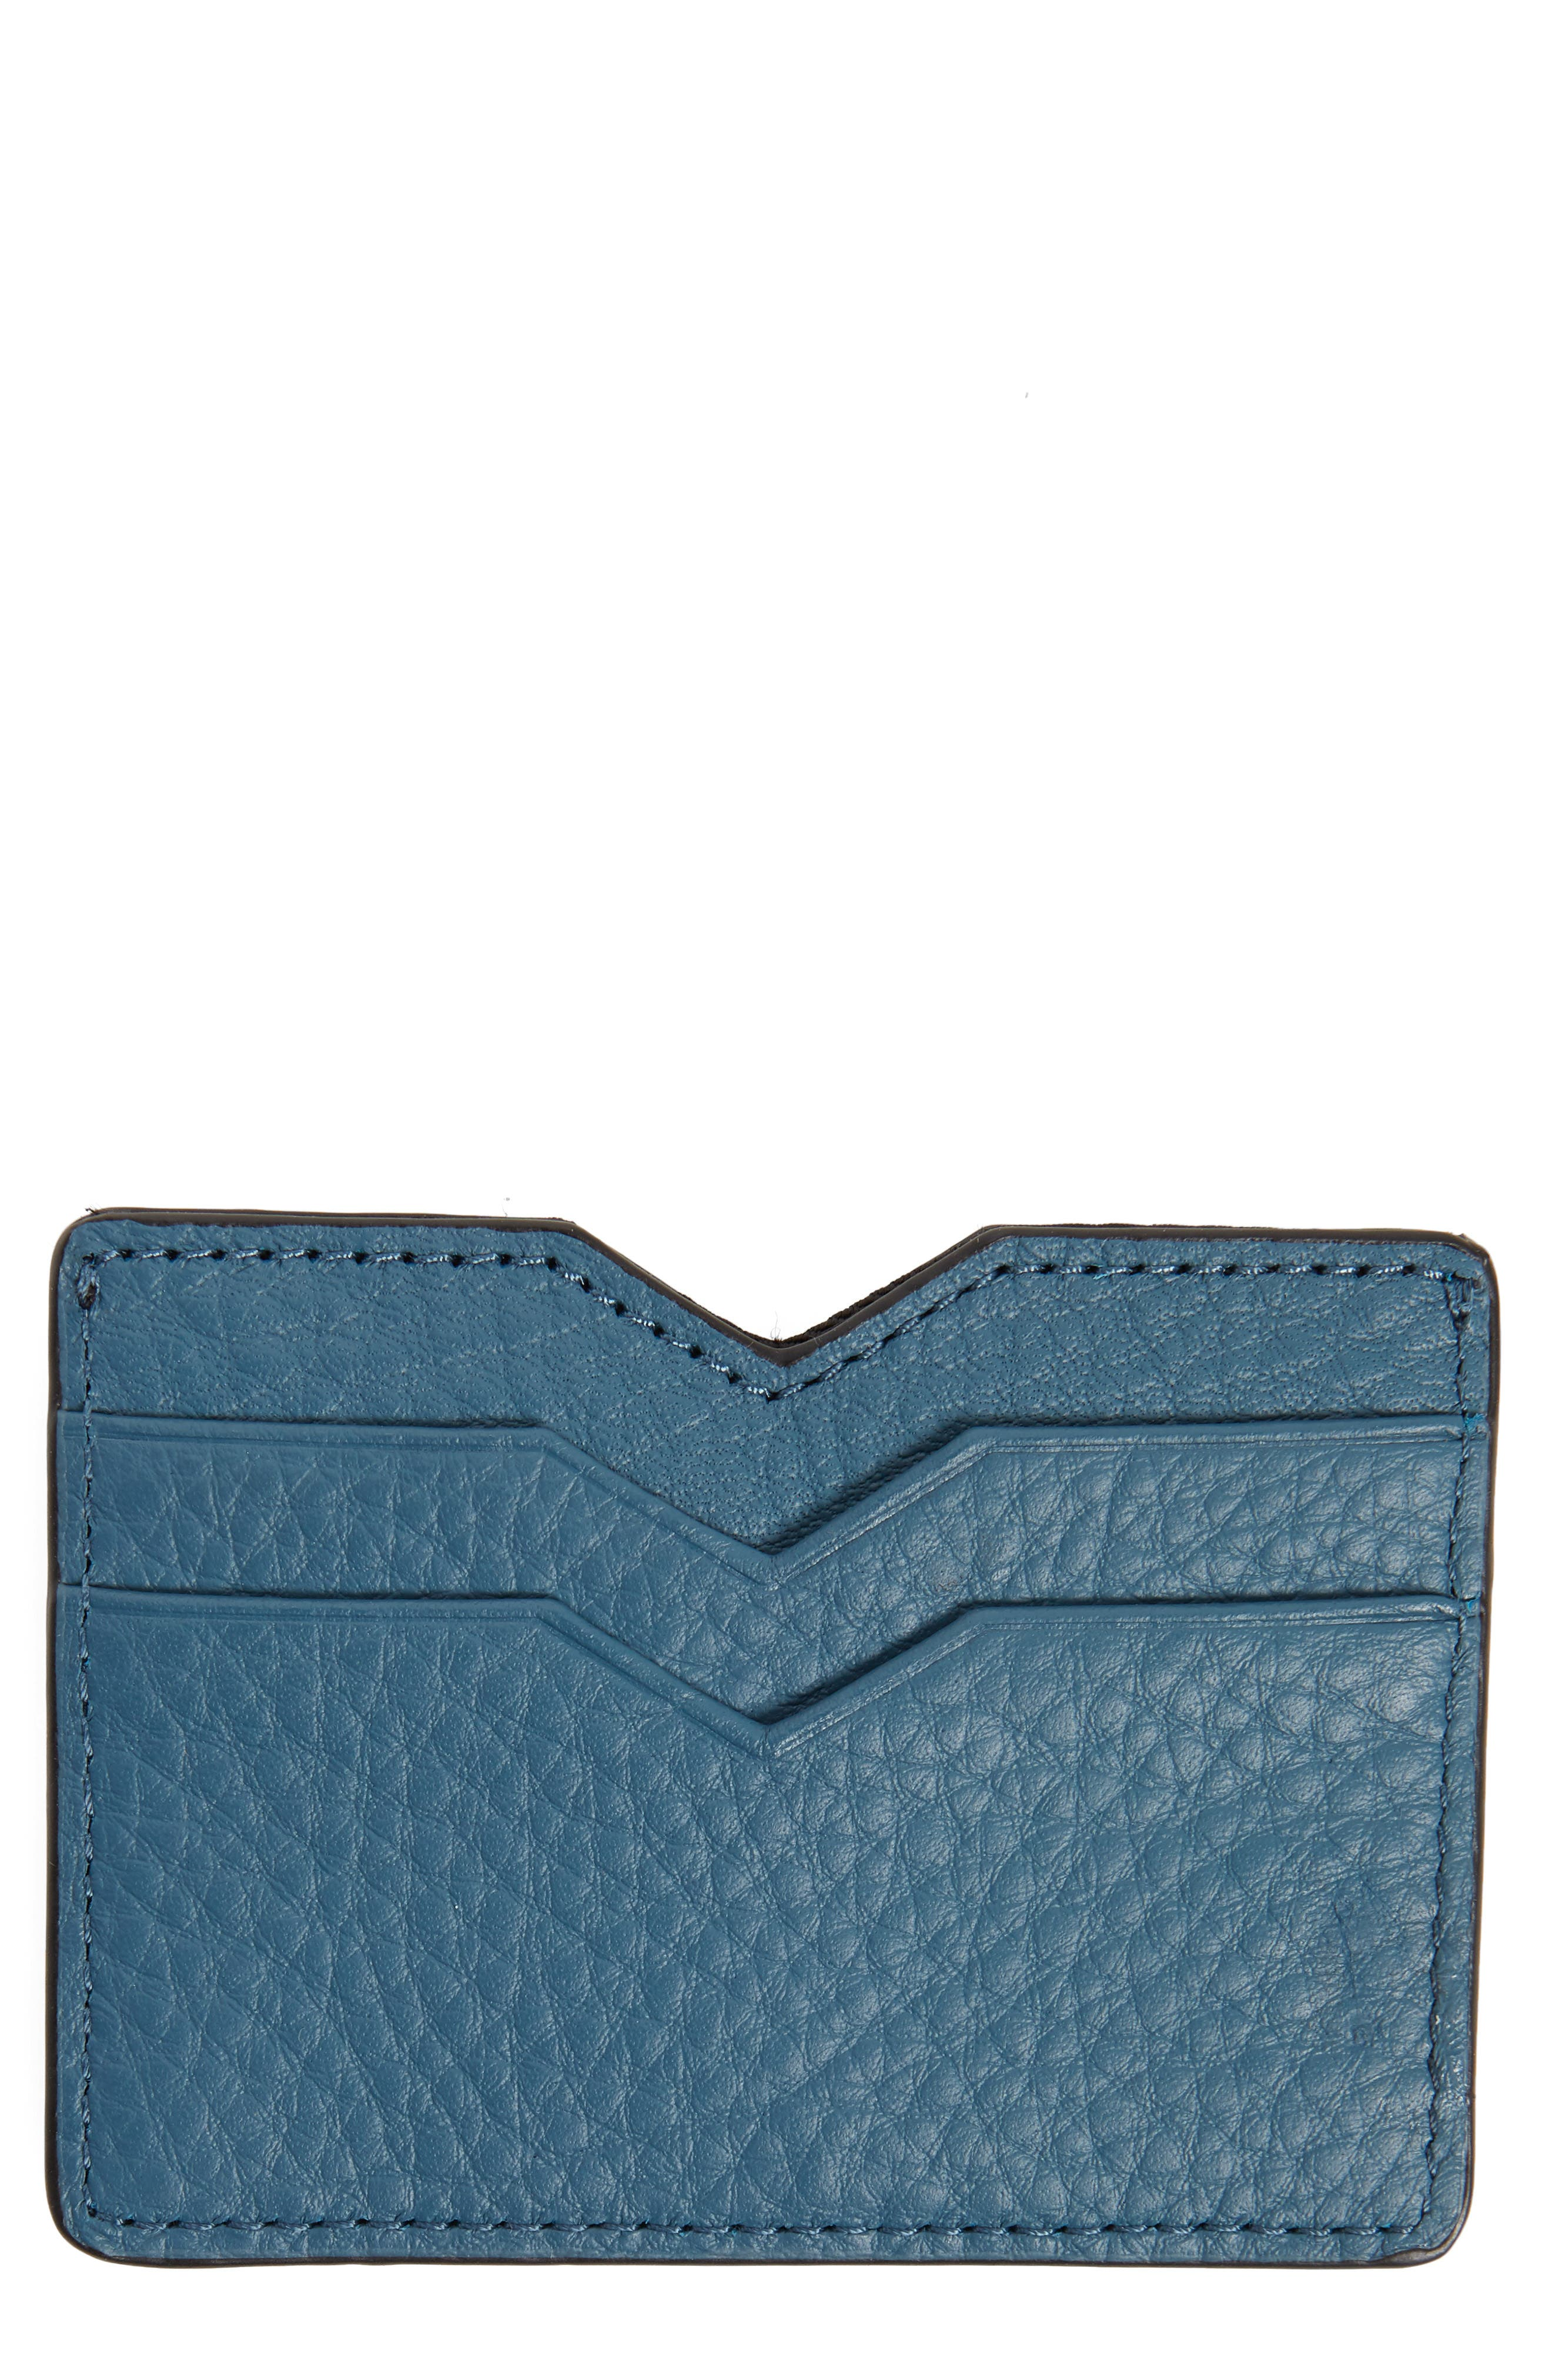 Wes Leather Card Case,                         Main,                         color, Ocean